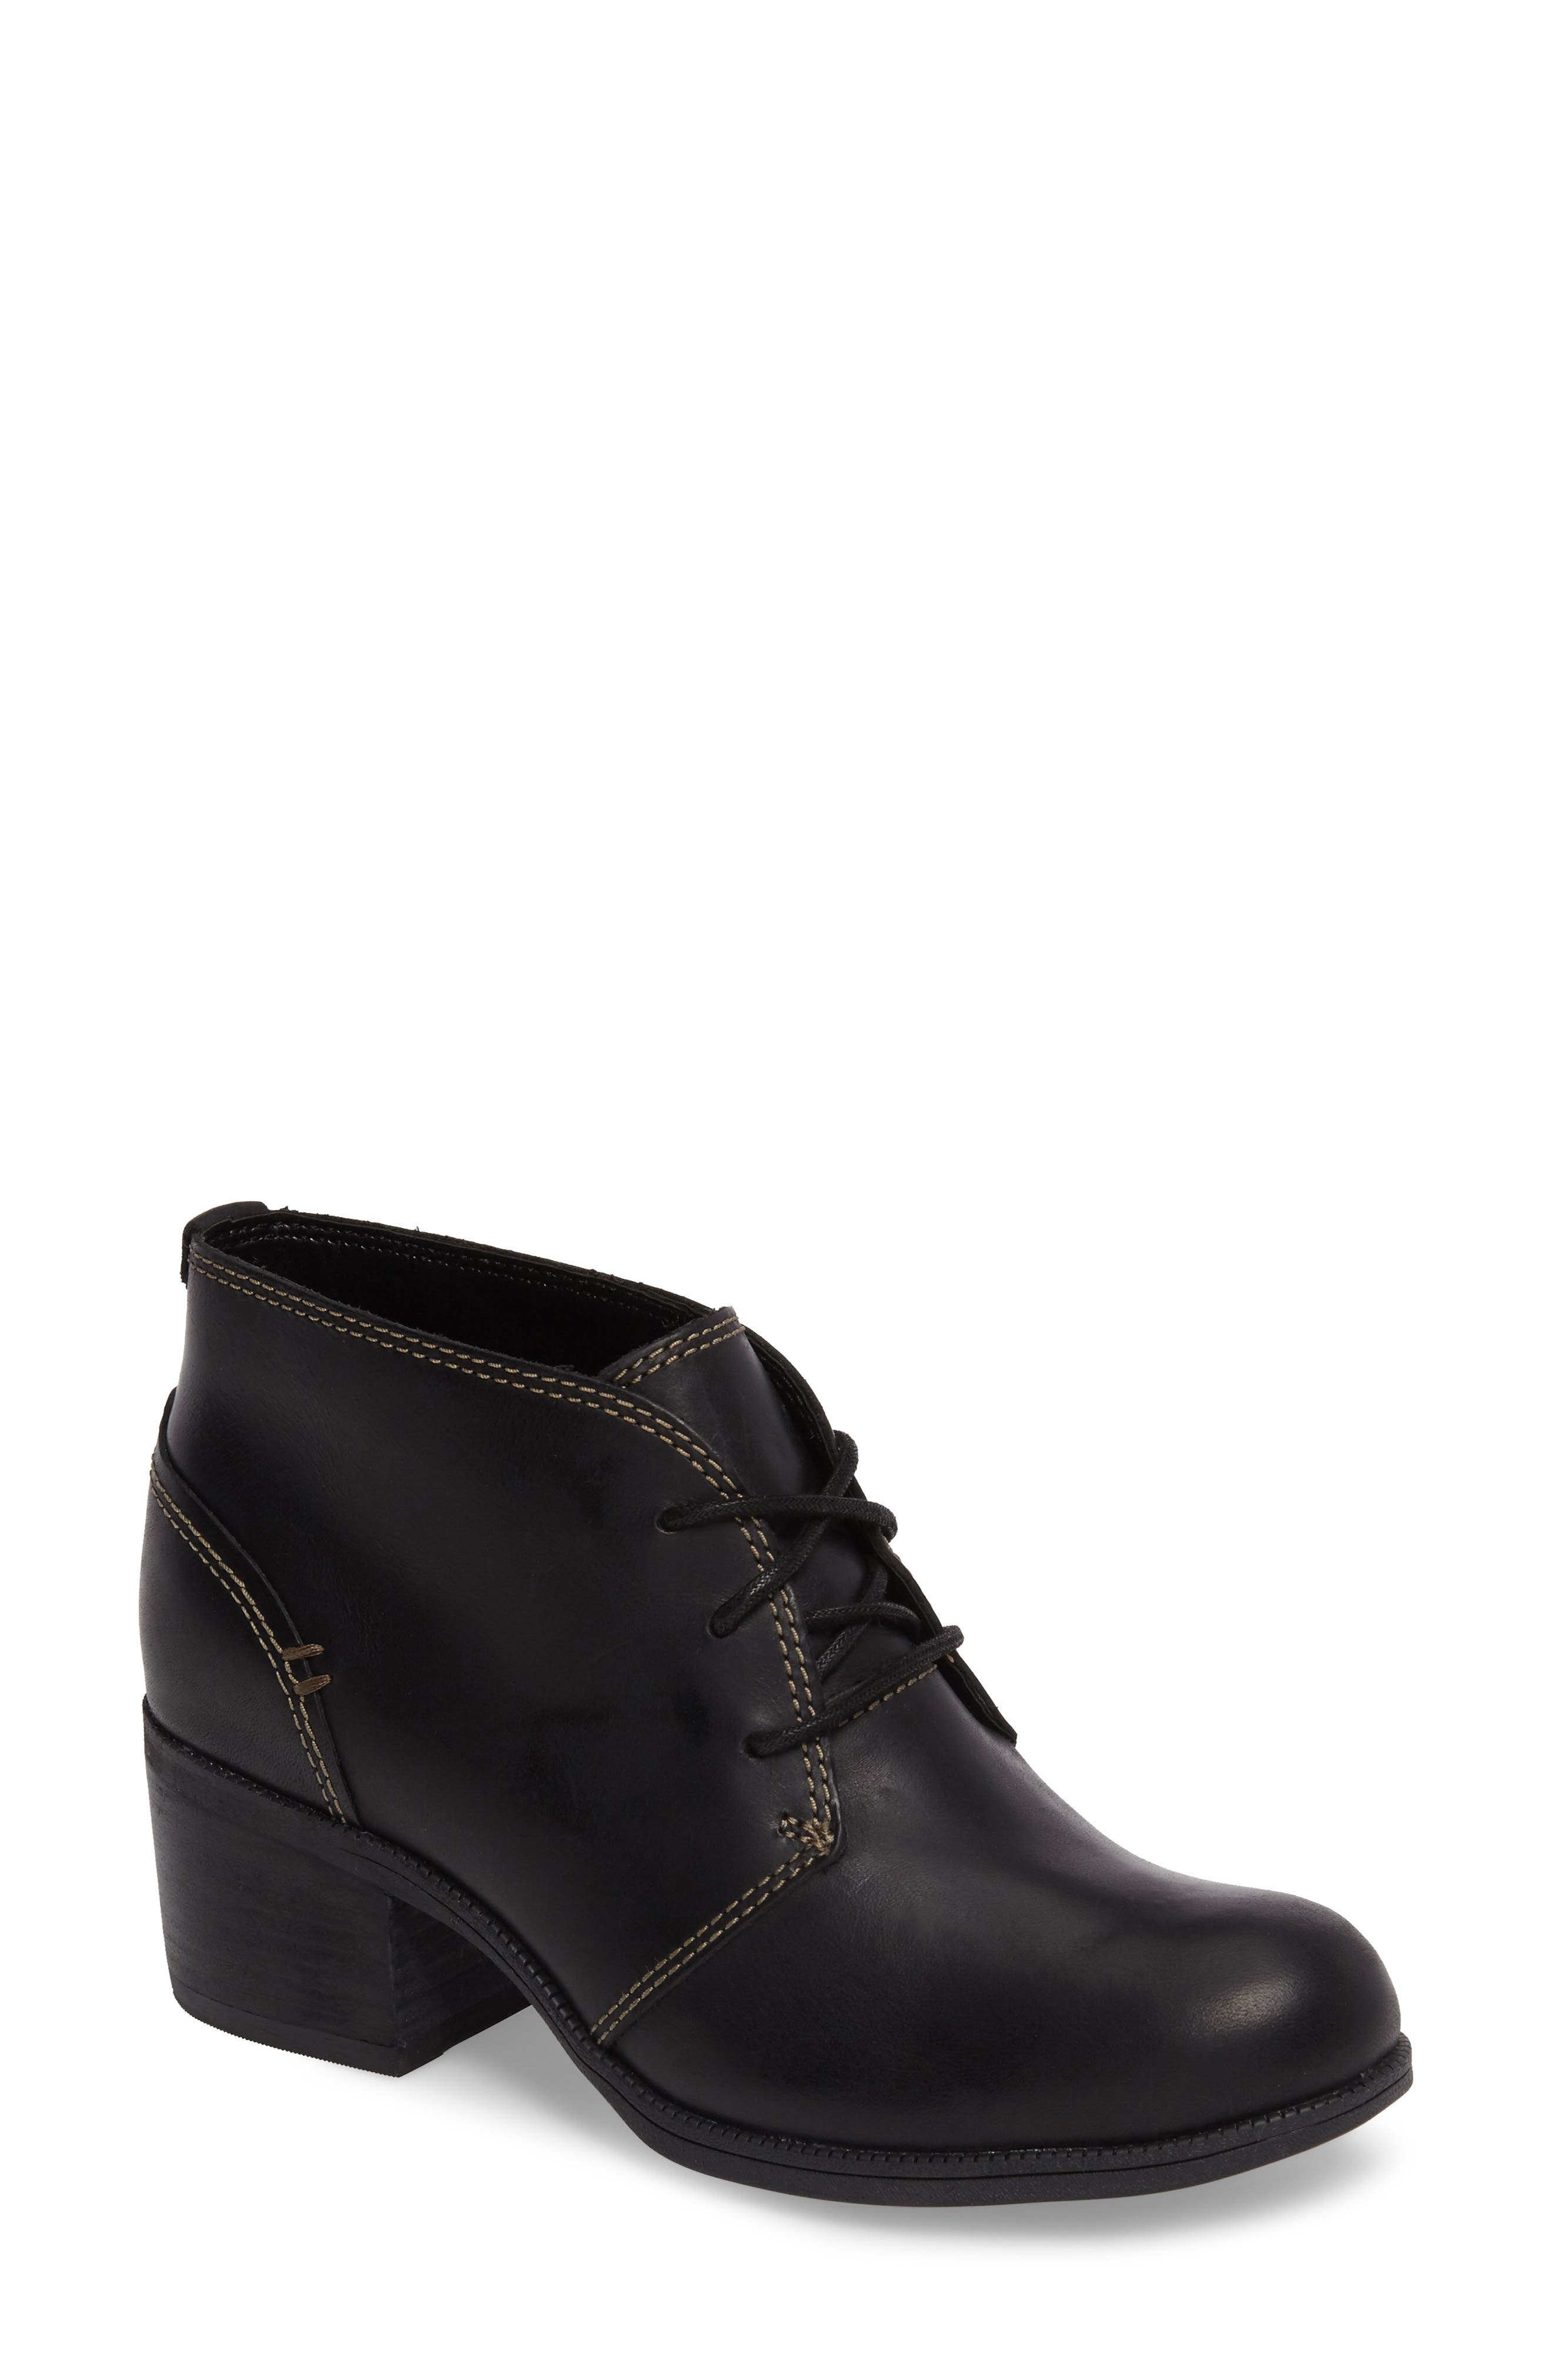 Main Image - Clarks® Maypearl Floral Boot (Women)